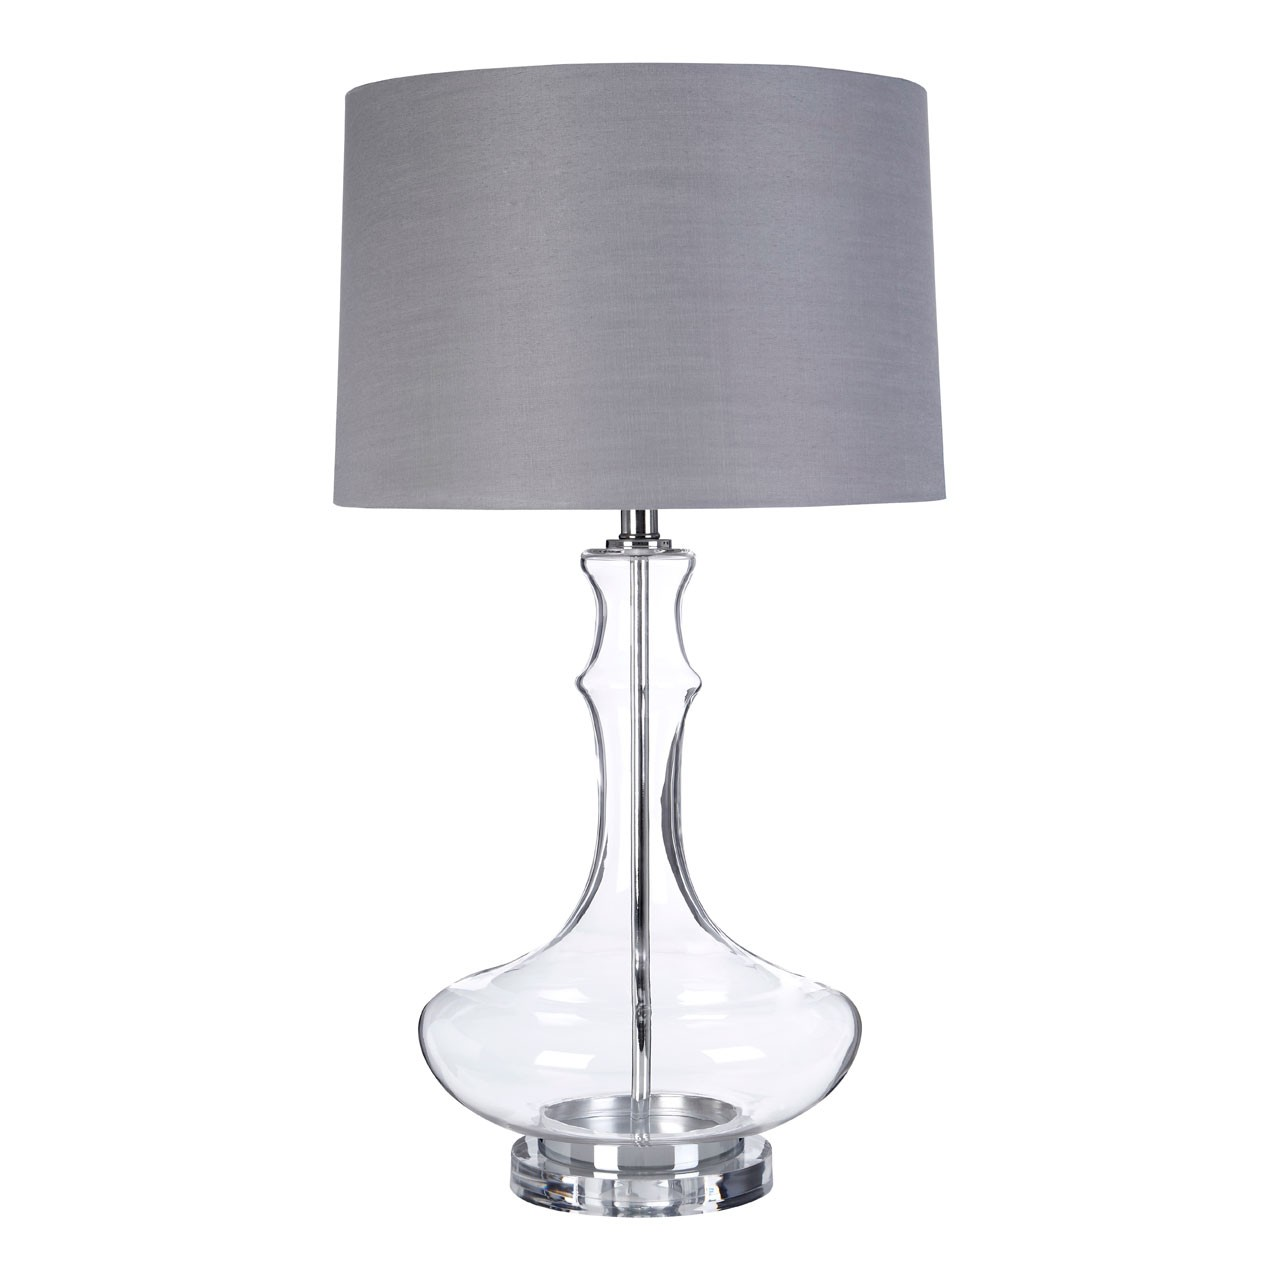 Prime Furnishing Areli Table Lamp - Glass/Metal Base,Linen Shade